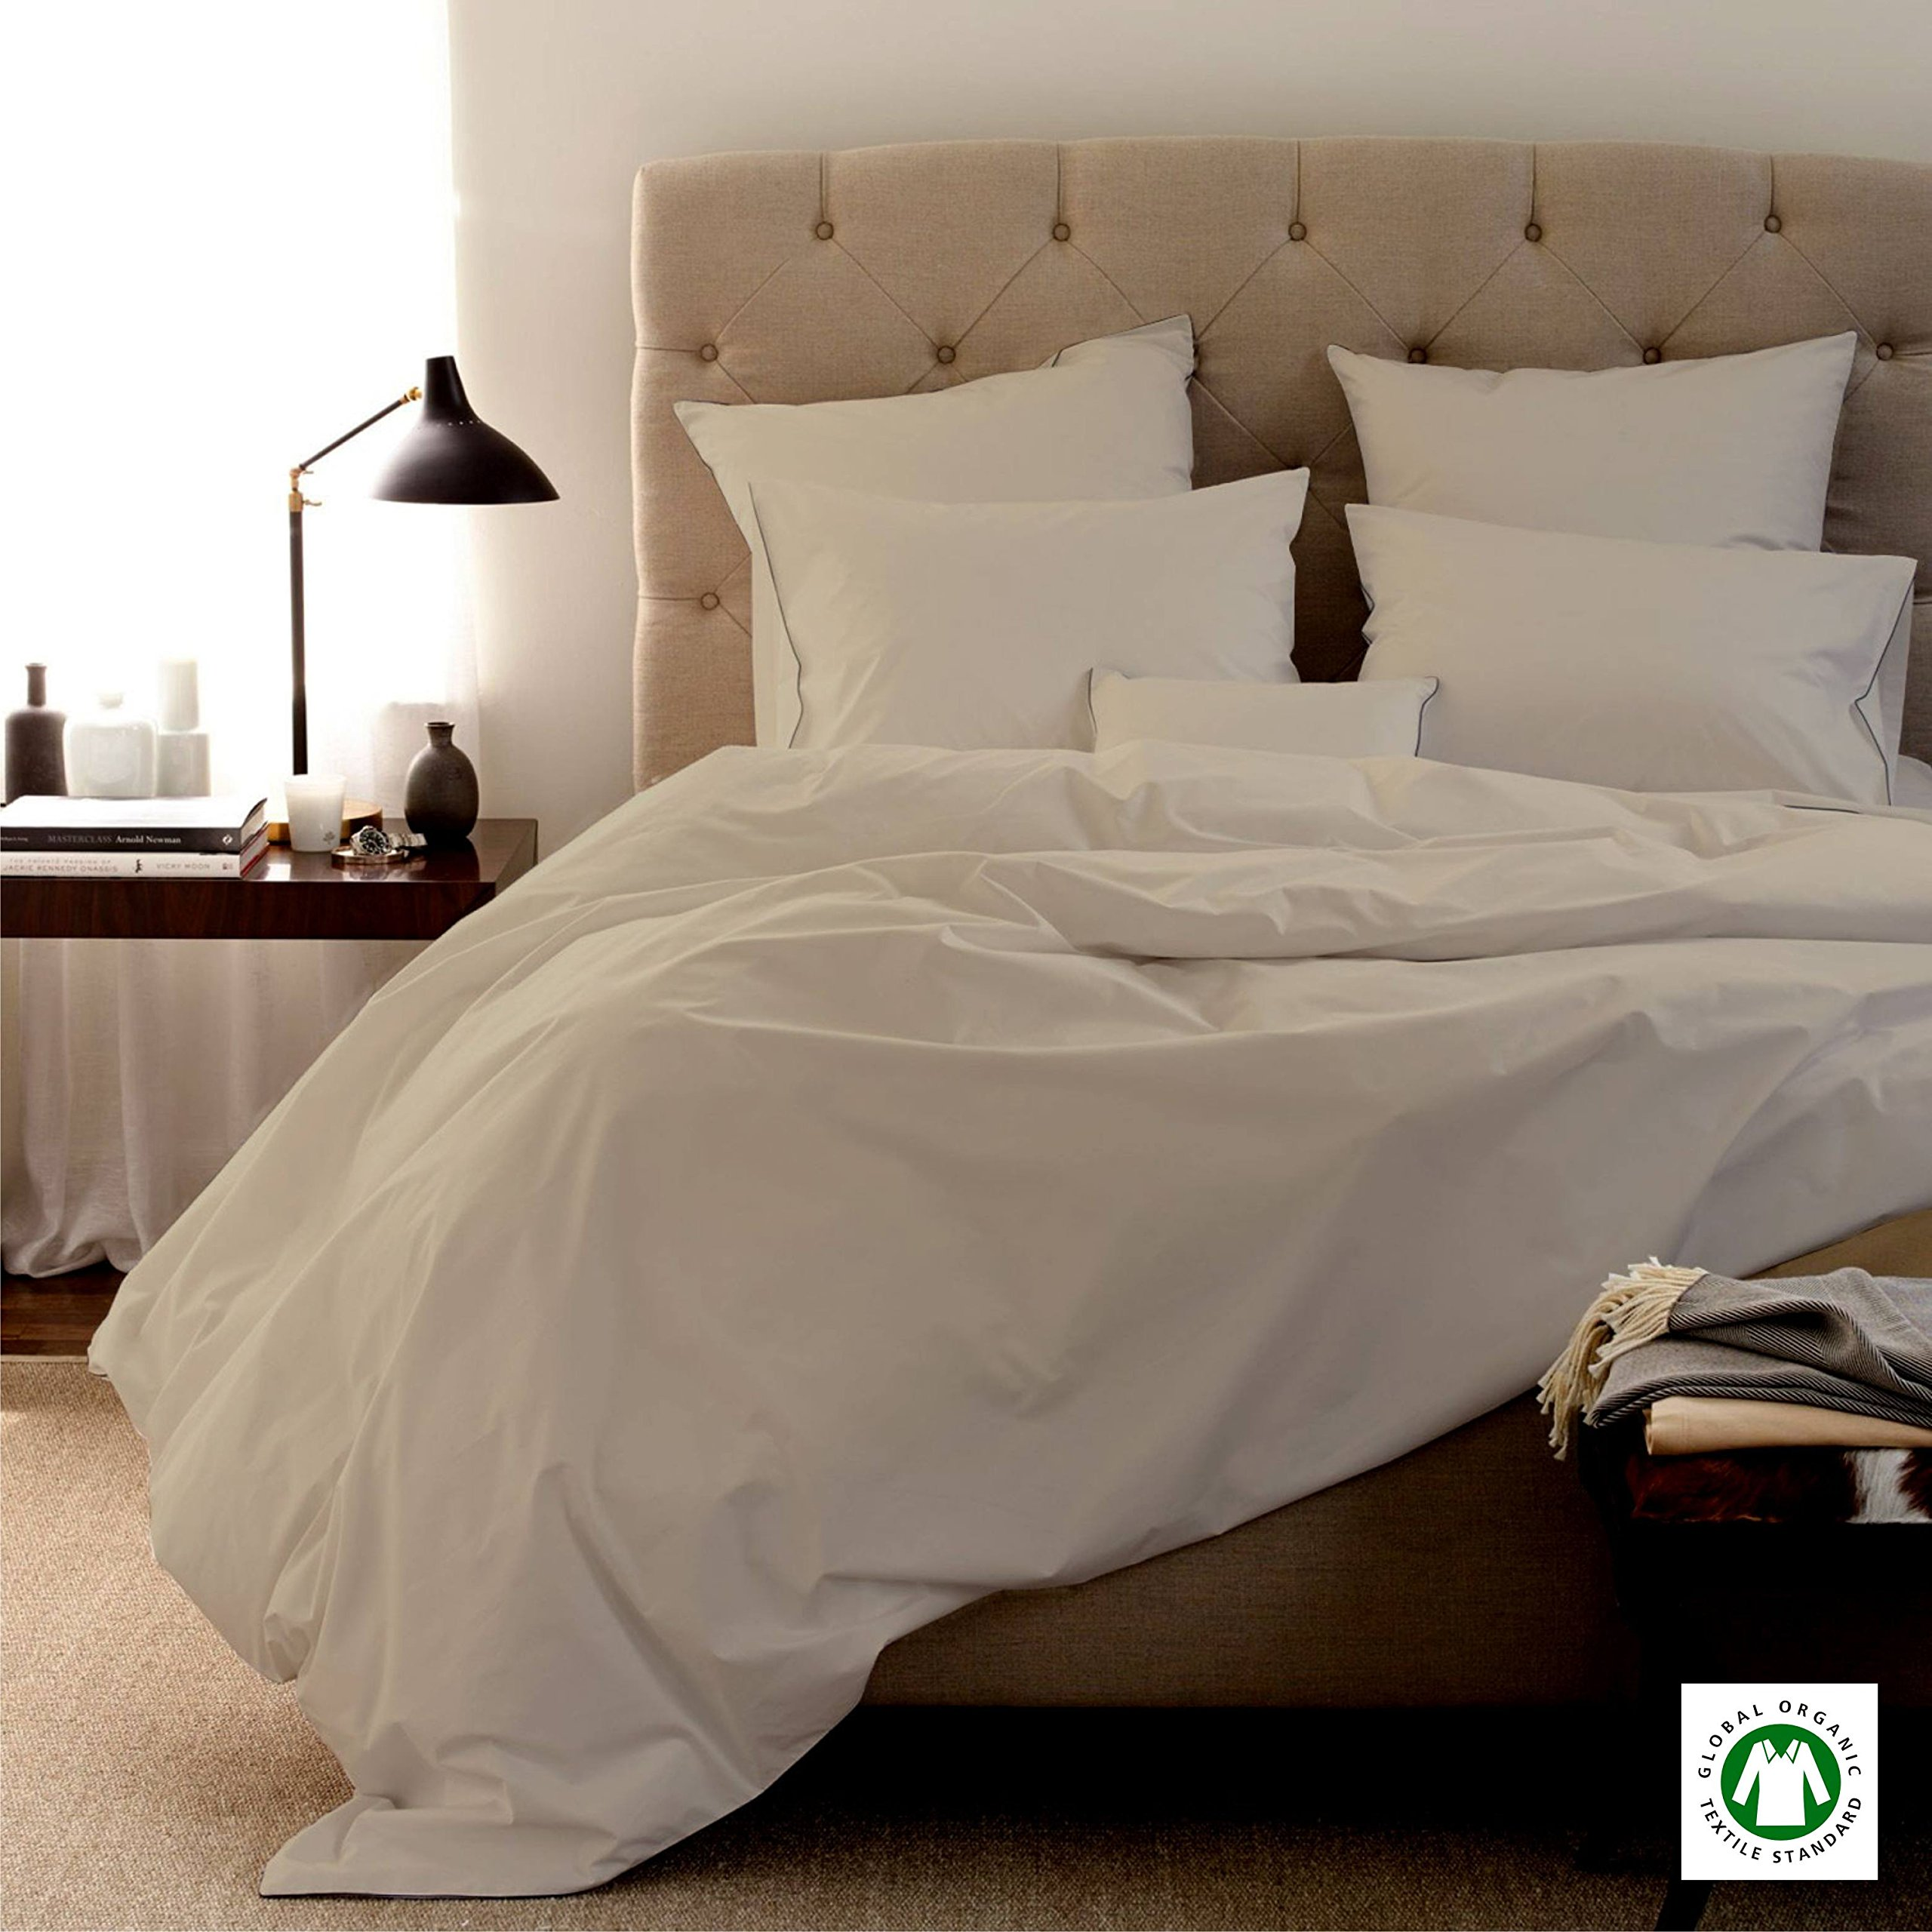 Organic Bed Sheets-Size-QUEEN, Color-IVORY sheets are comfortable and ultra-soft & silky# Made in India 800 Thread Count - 100% Organic Cotton 4pc Bed Sheet Set With 19'' DEEP POCKET